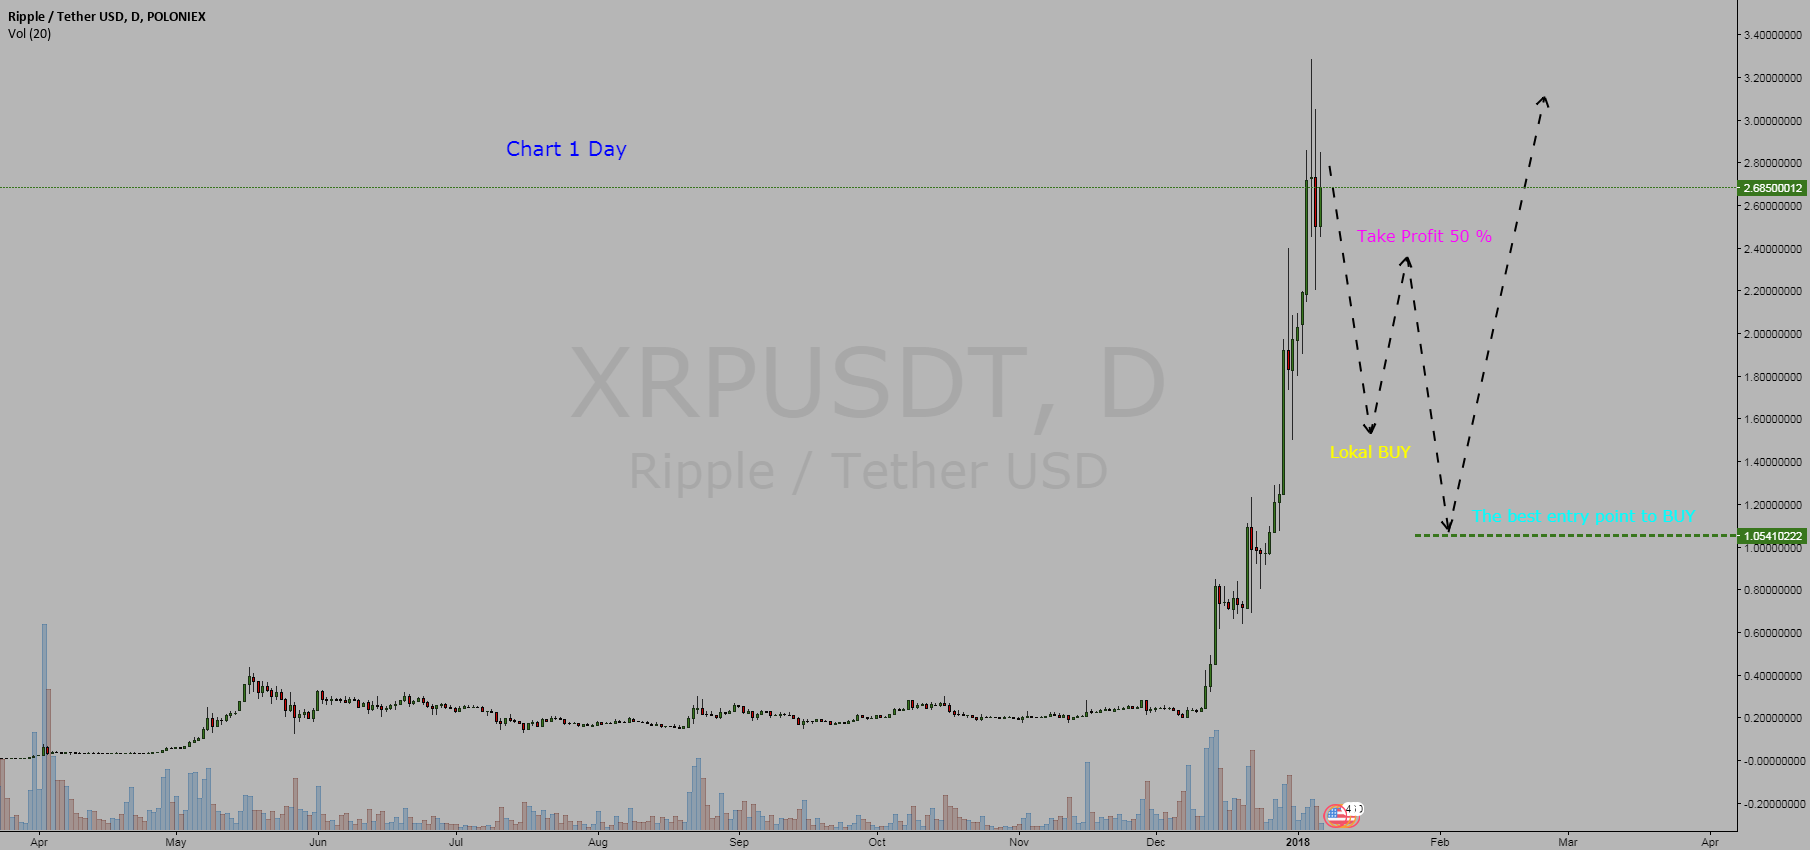 Cryptocurrency  Ripple / Tether Dollar  =  BUY